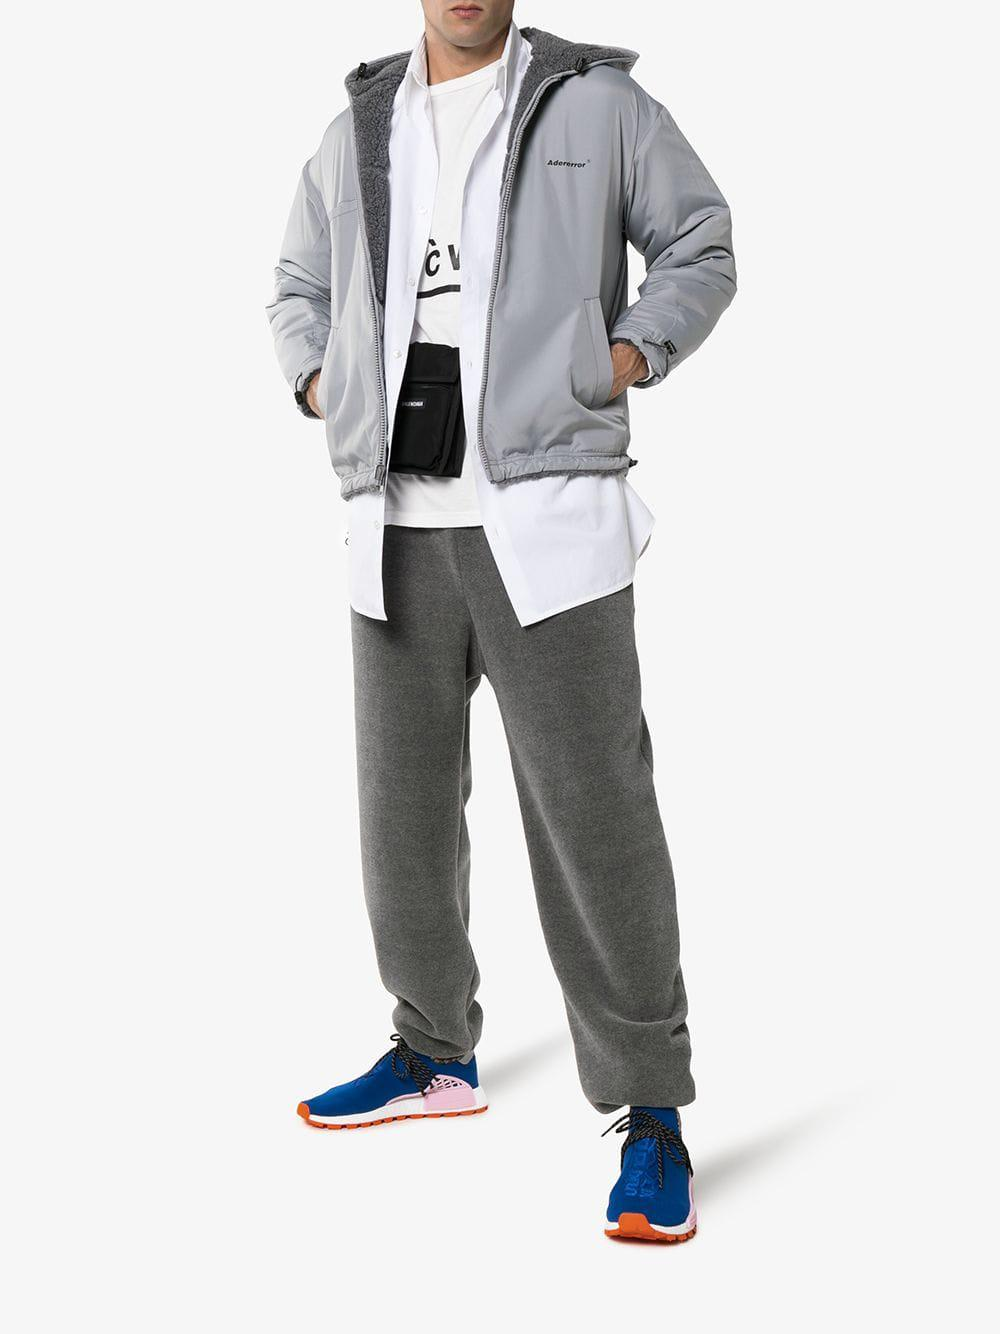 589737af3 Lyst - adidas X Pharrell Williams Blue Human Body Nmd Sneakers in Blue for  Men